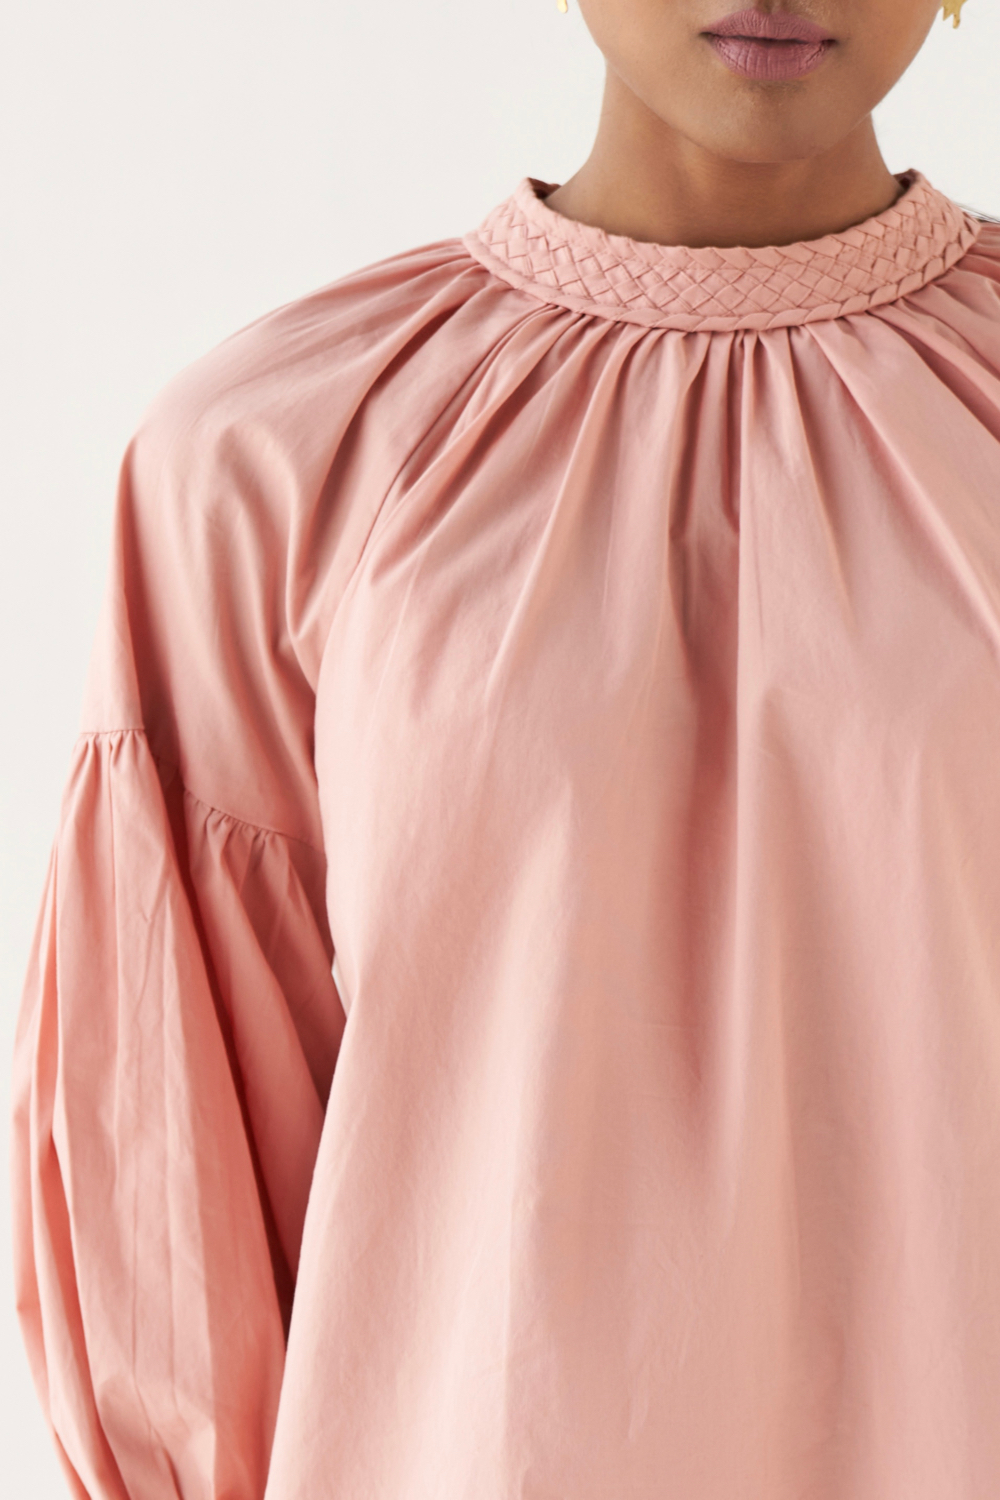 MARRAKESH SOLID PINK COTTON POPLIN FABRIC TOP WITH FULL LENGTH SLEEVES AND BRAIDED NECK